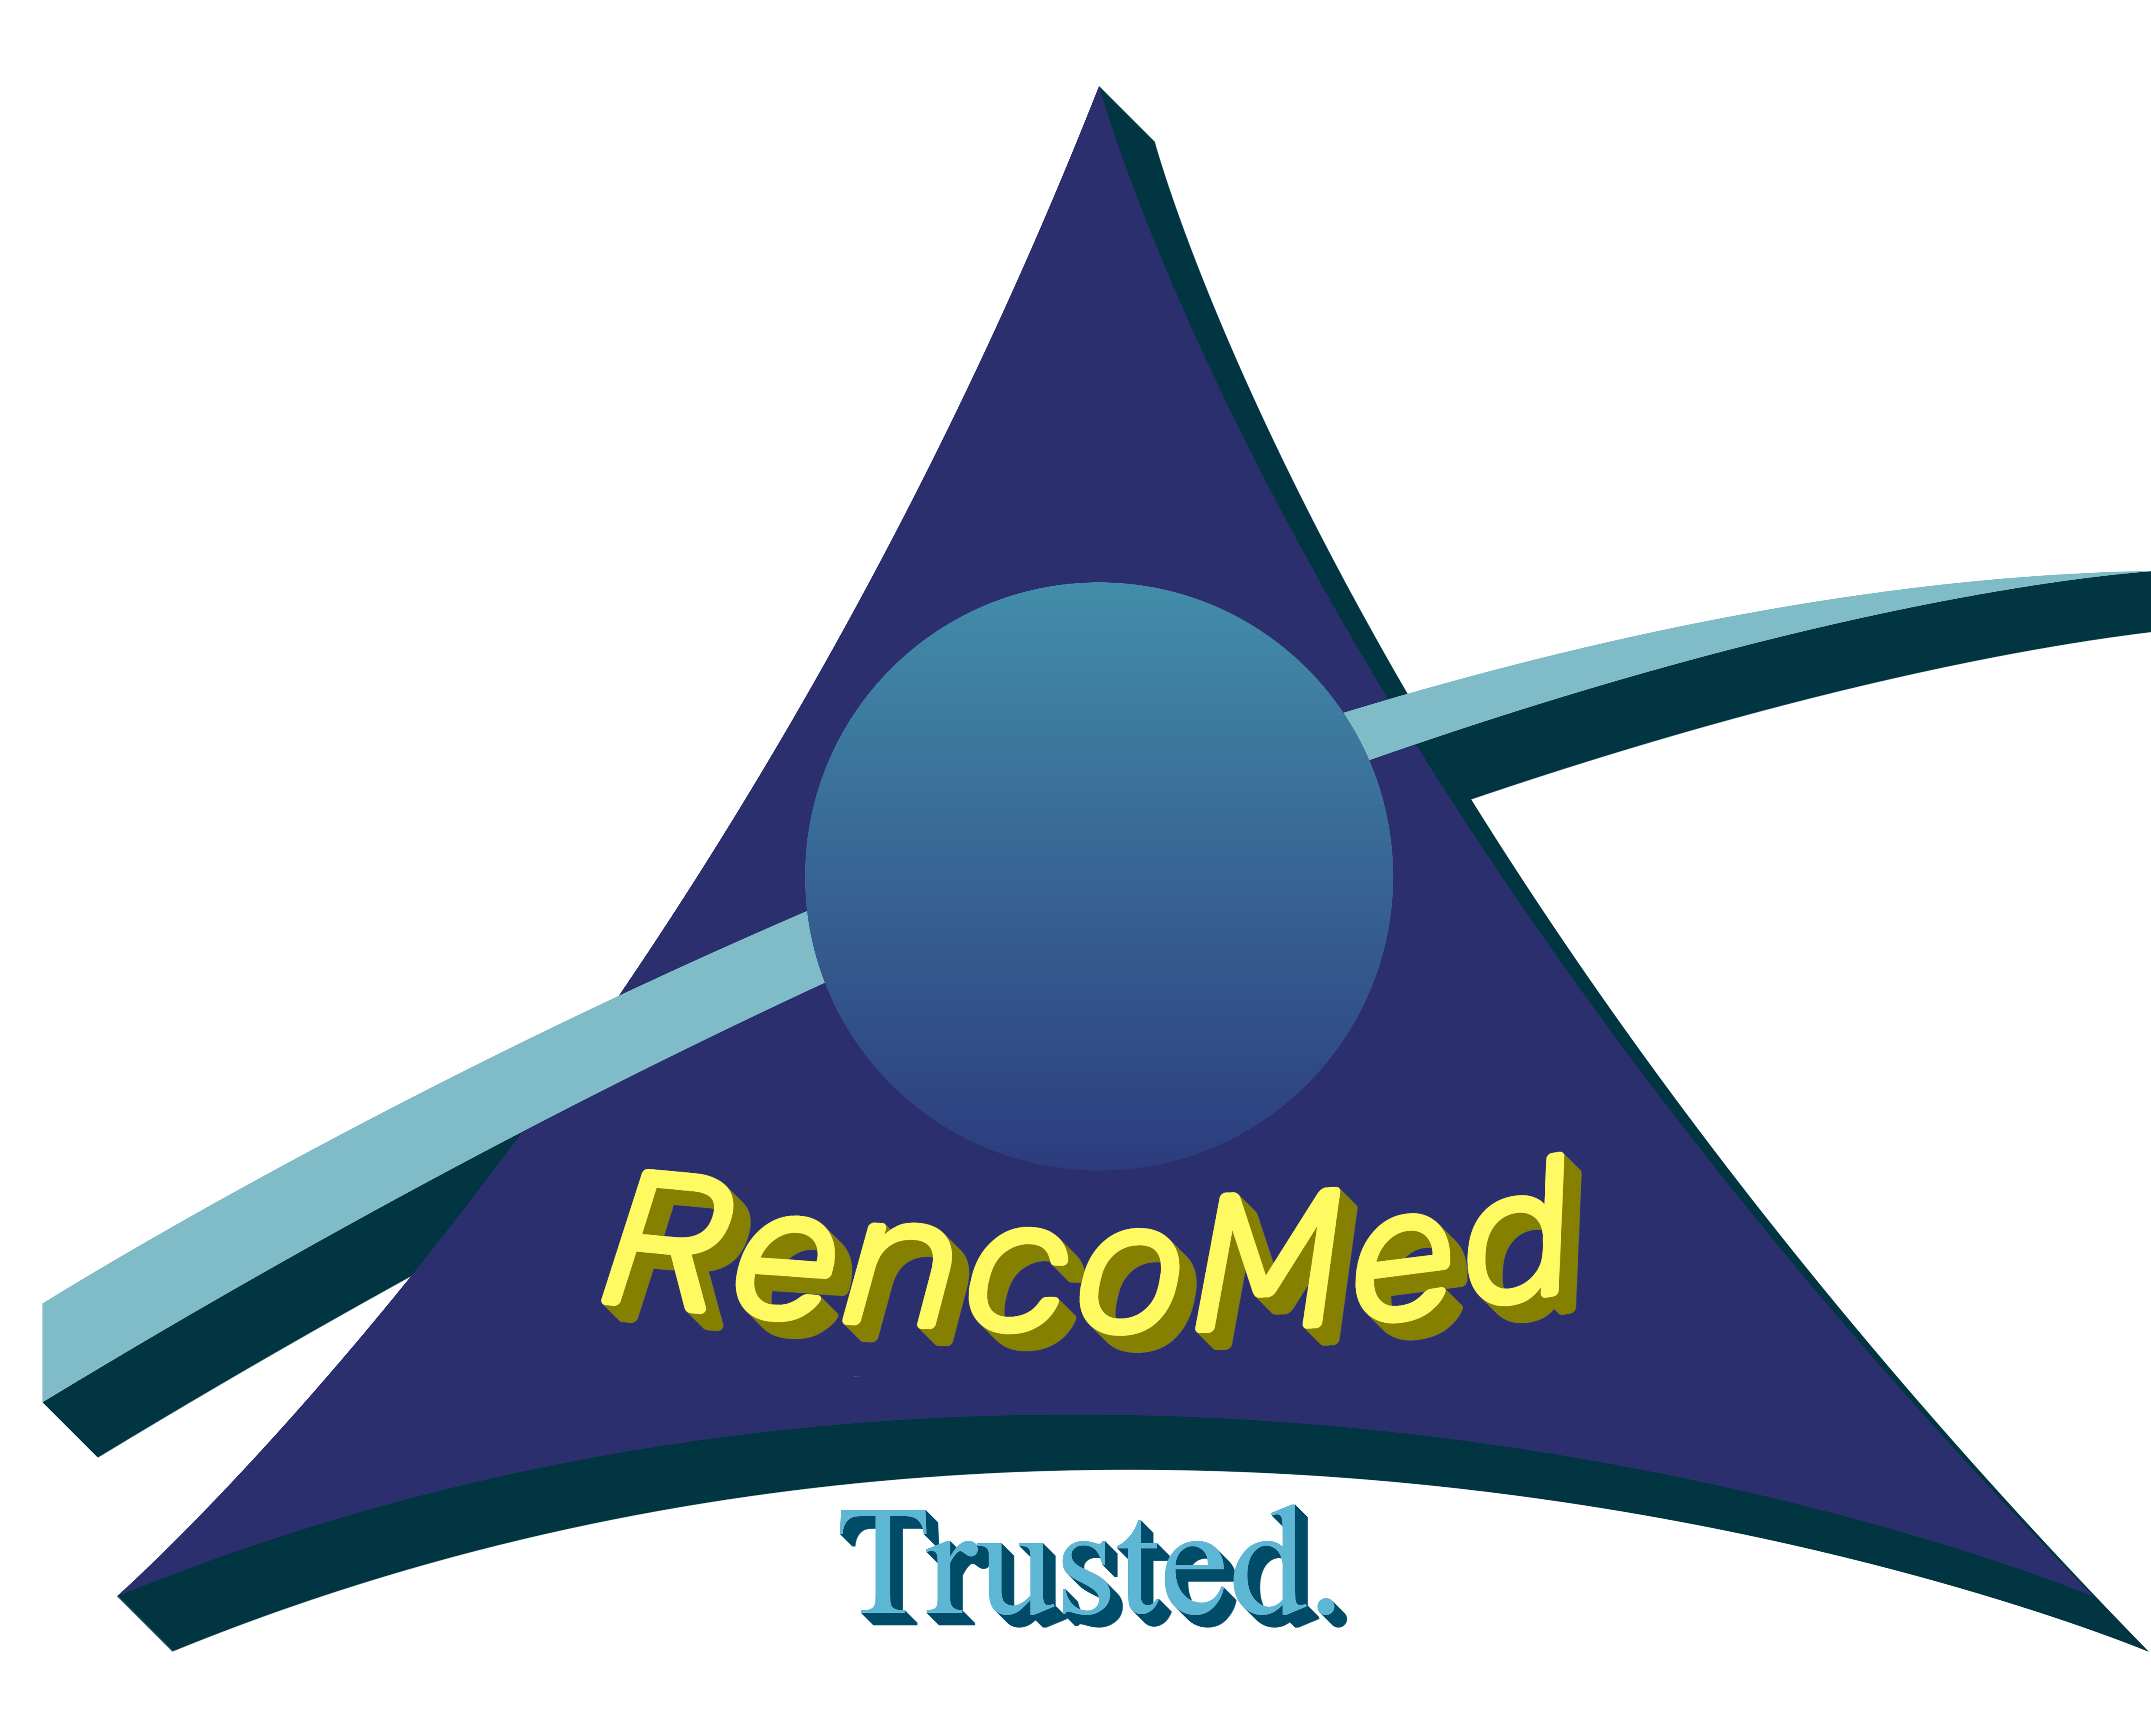 RencoMed